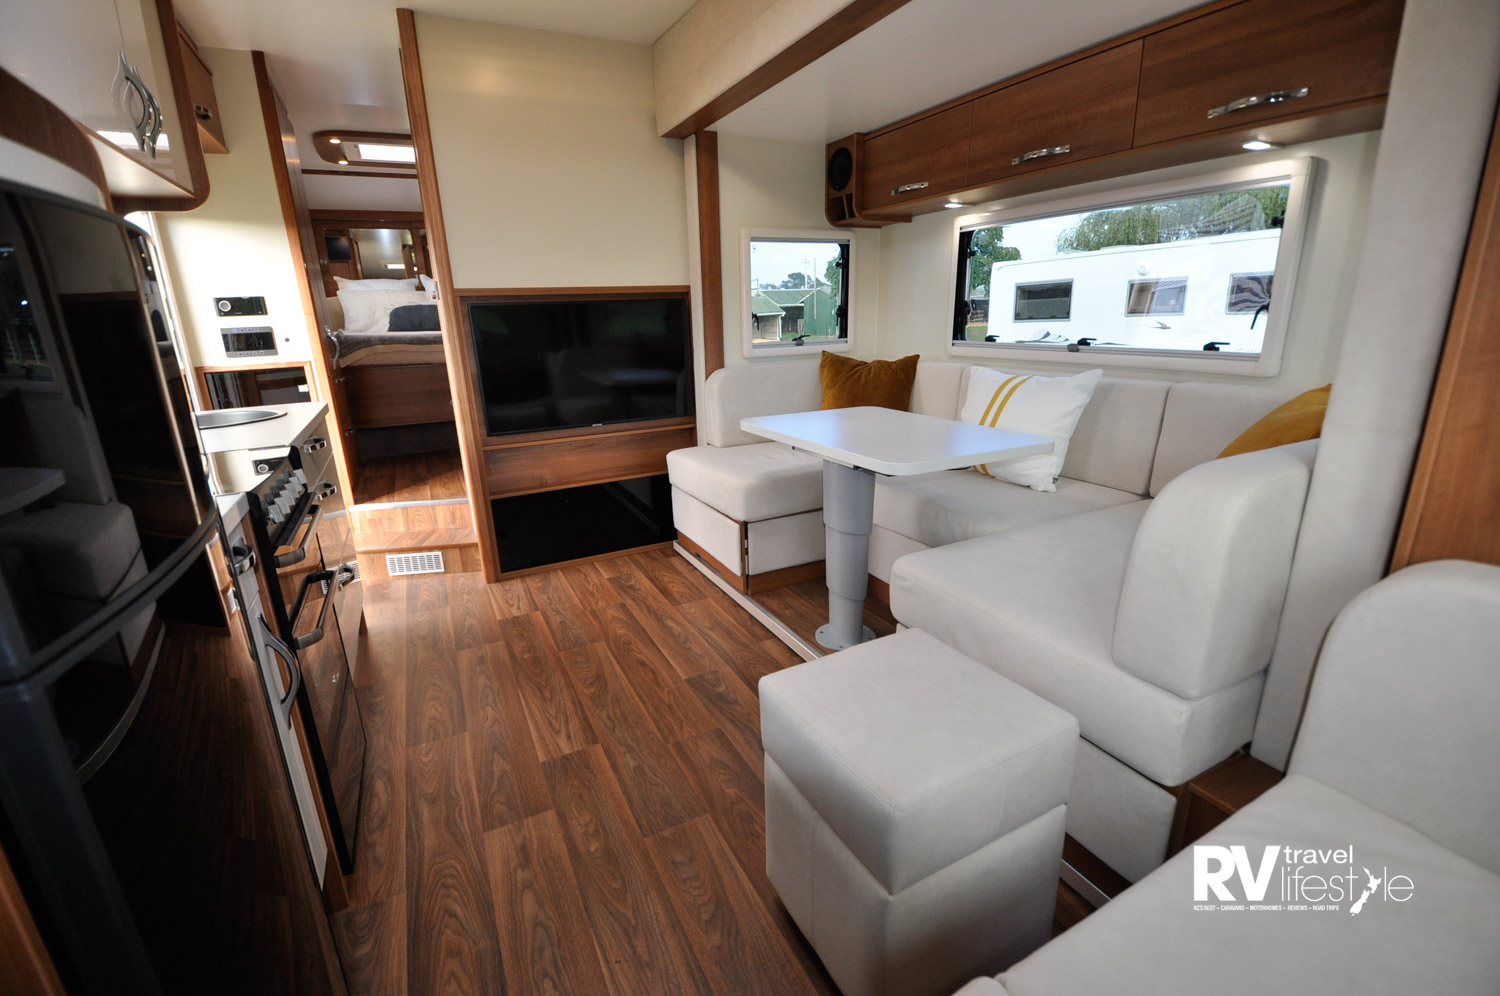 The flooring looks and feels like real wood (vinyl) and has underfloor heating. The internal height is 2200mm, giving a feeling of spaciousness you don't often get in an RV and the slide-out adds 2.7m2 extra floor space